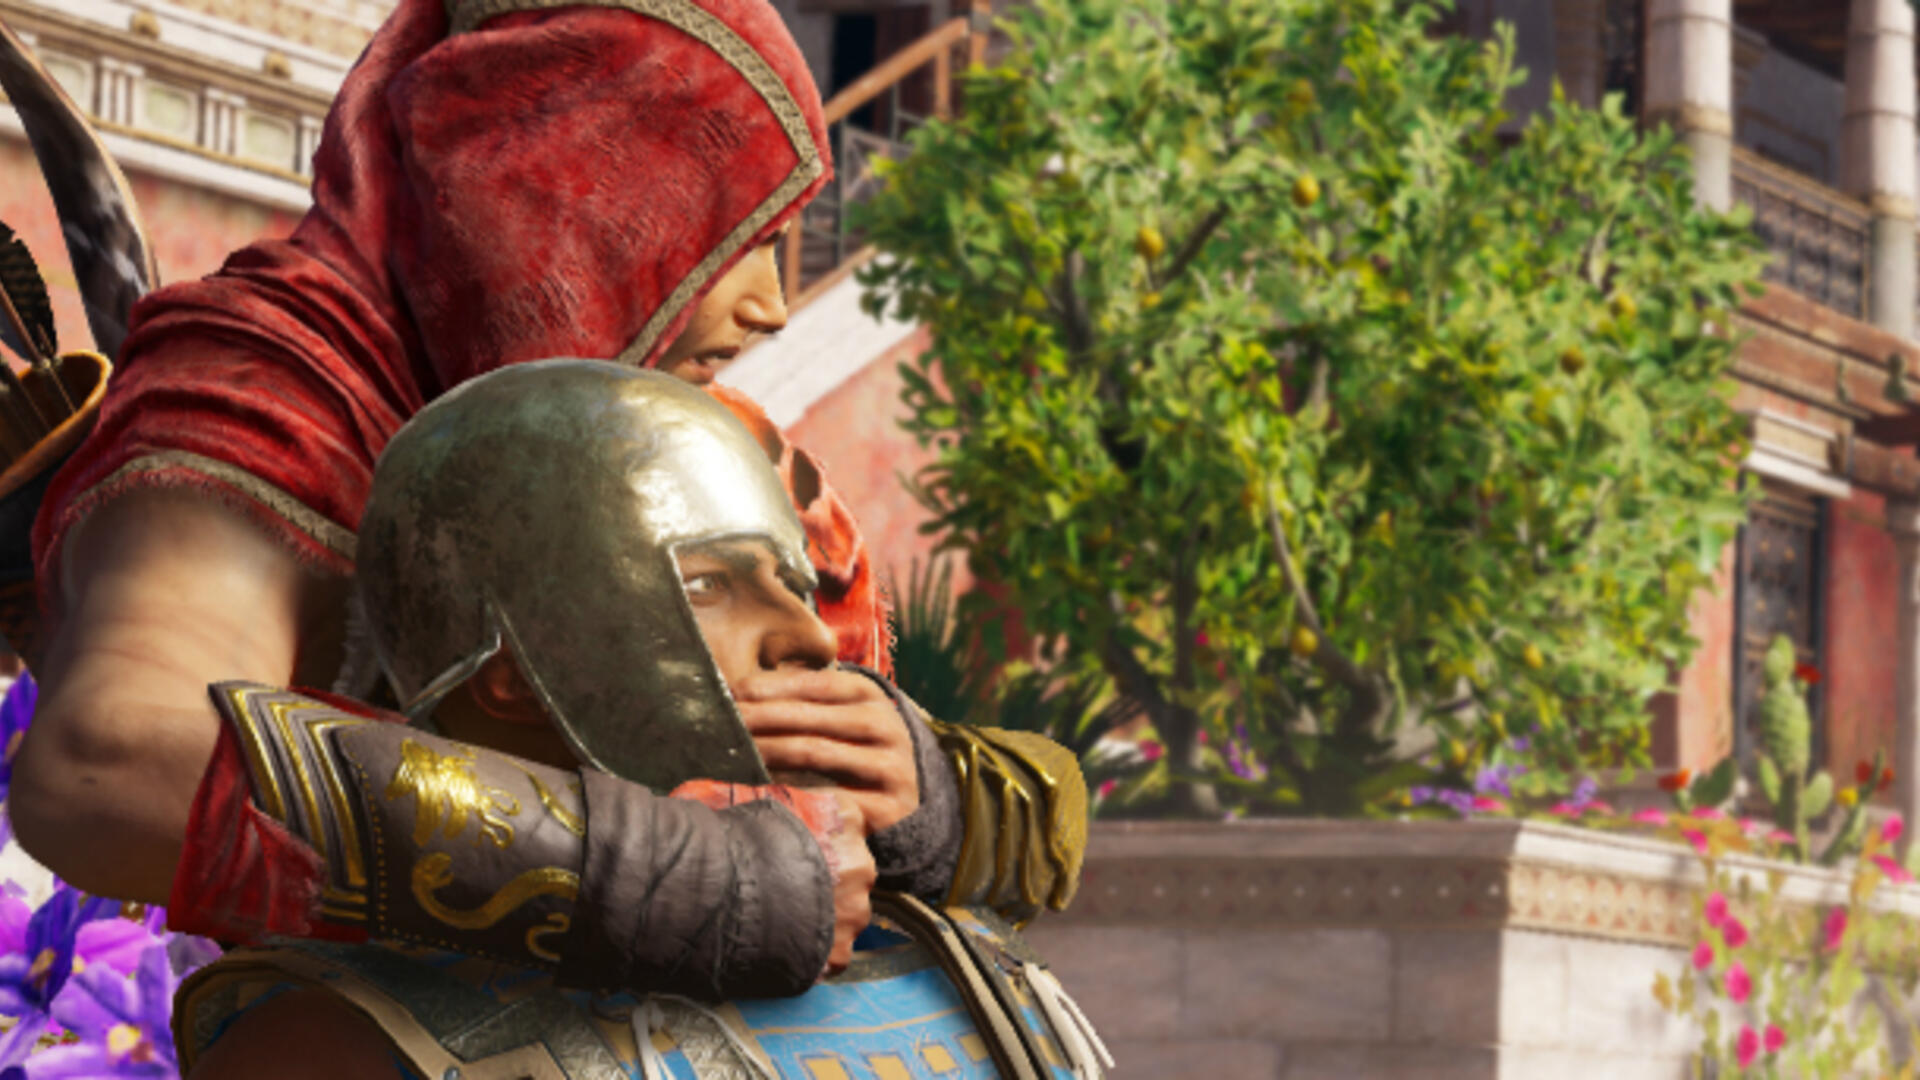 Assassin's Creed Odyssey Uses the Same Button for 'Interact' and 'Assassinate', Chaos Ensues